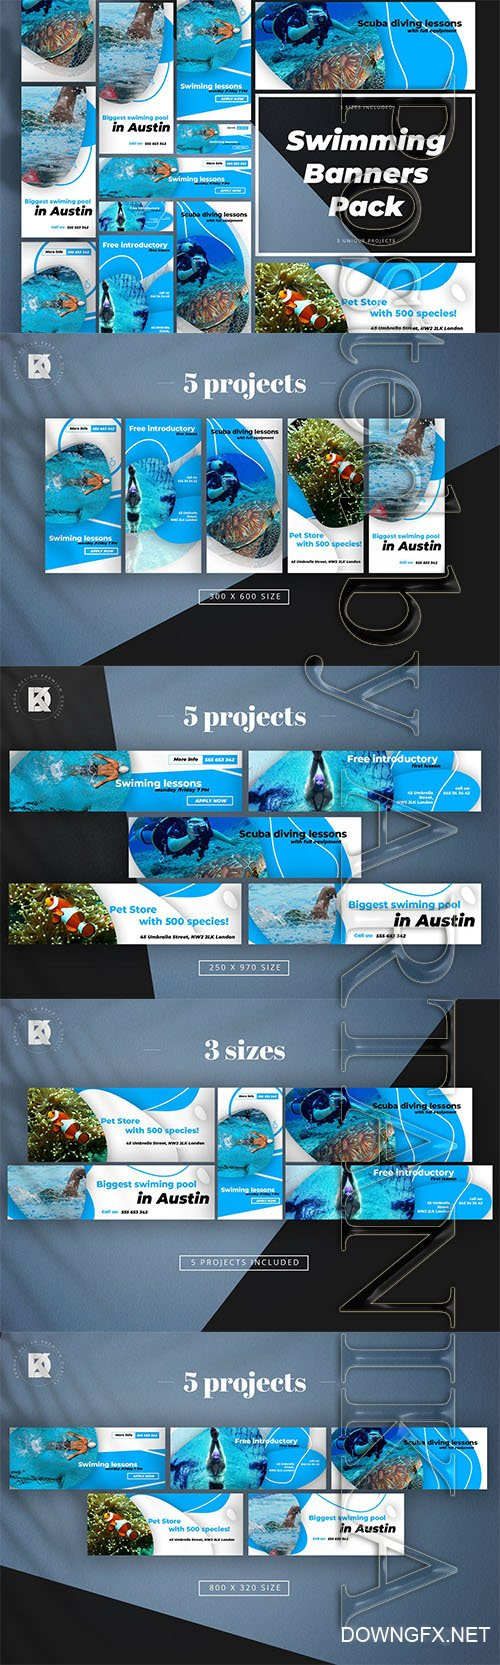 Swimming Banner Pack